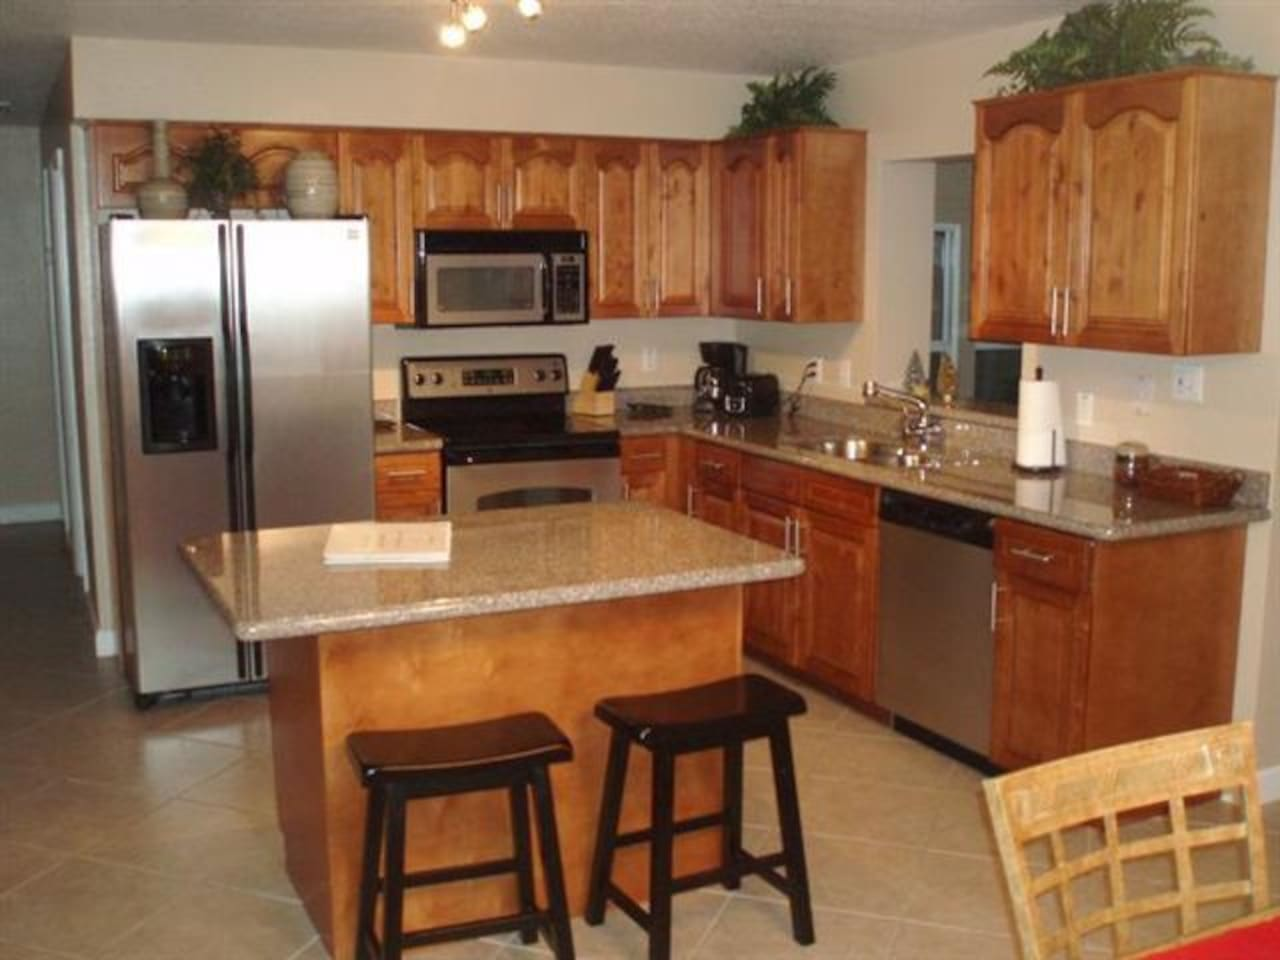 Eat in Kitchen with stainless steel appliances and honey maple cabinets